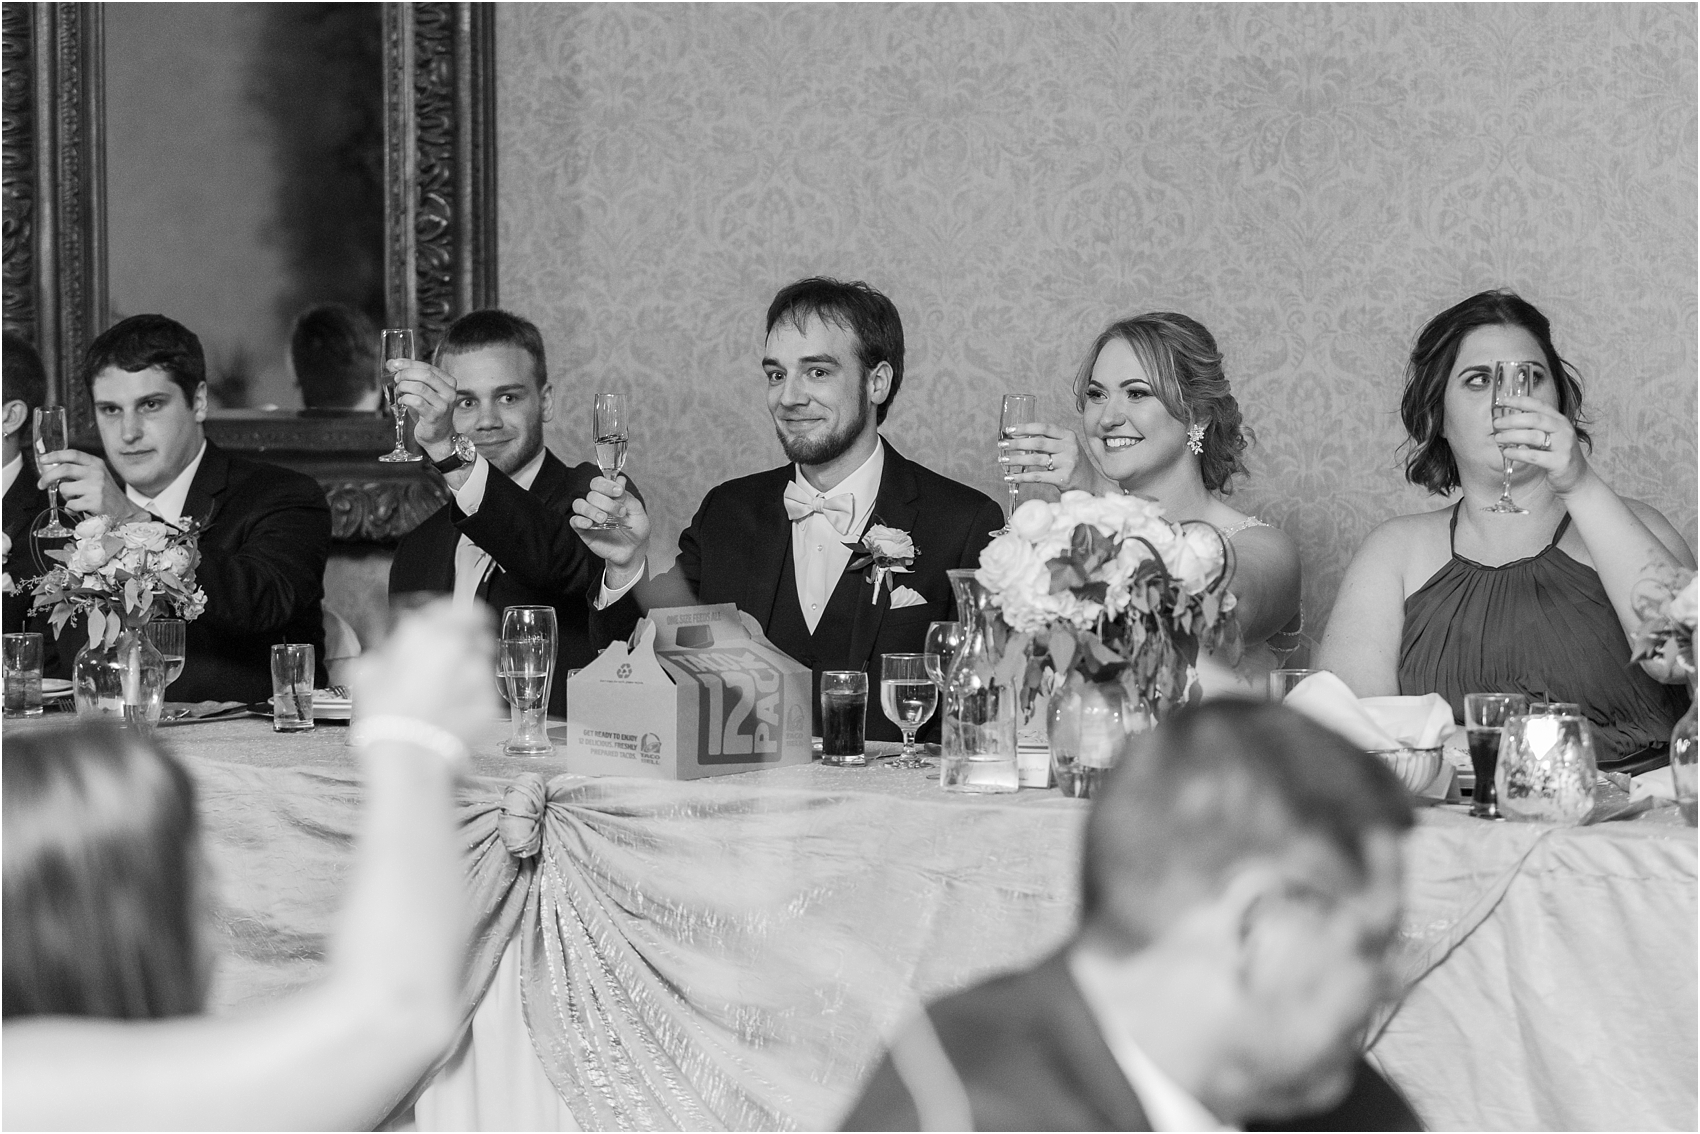 lord-of-the-rings-inspired-wedding-photos-at-crystal-gardens-in-howell-mi-by-courtney-carolyn-photography_0082.jpg